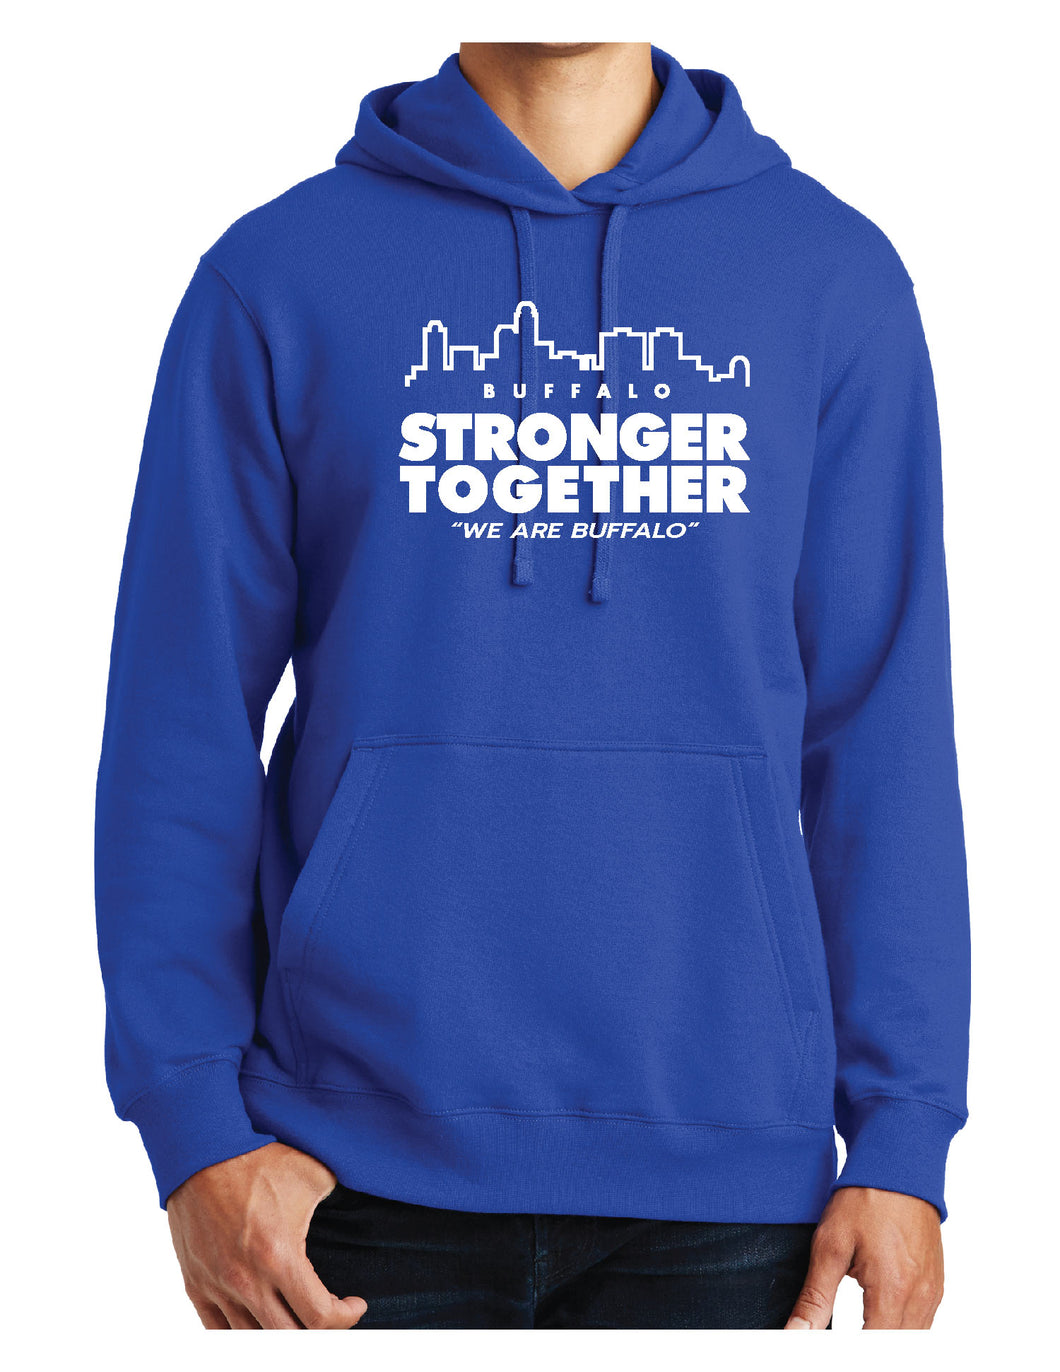 Stronger Together - Hoodie